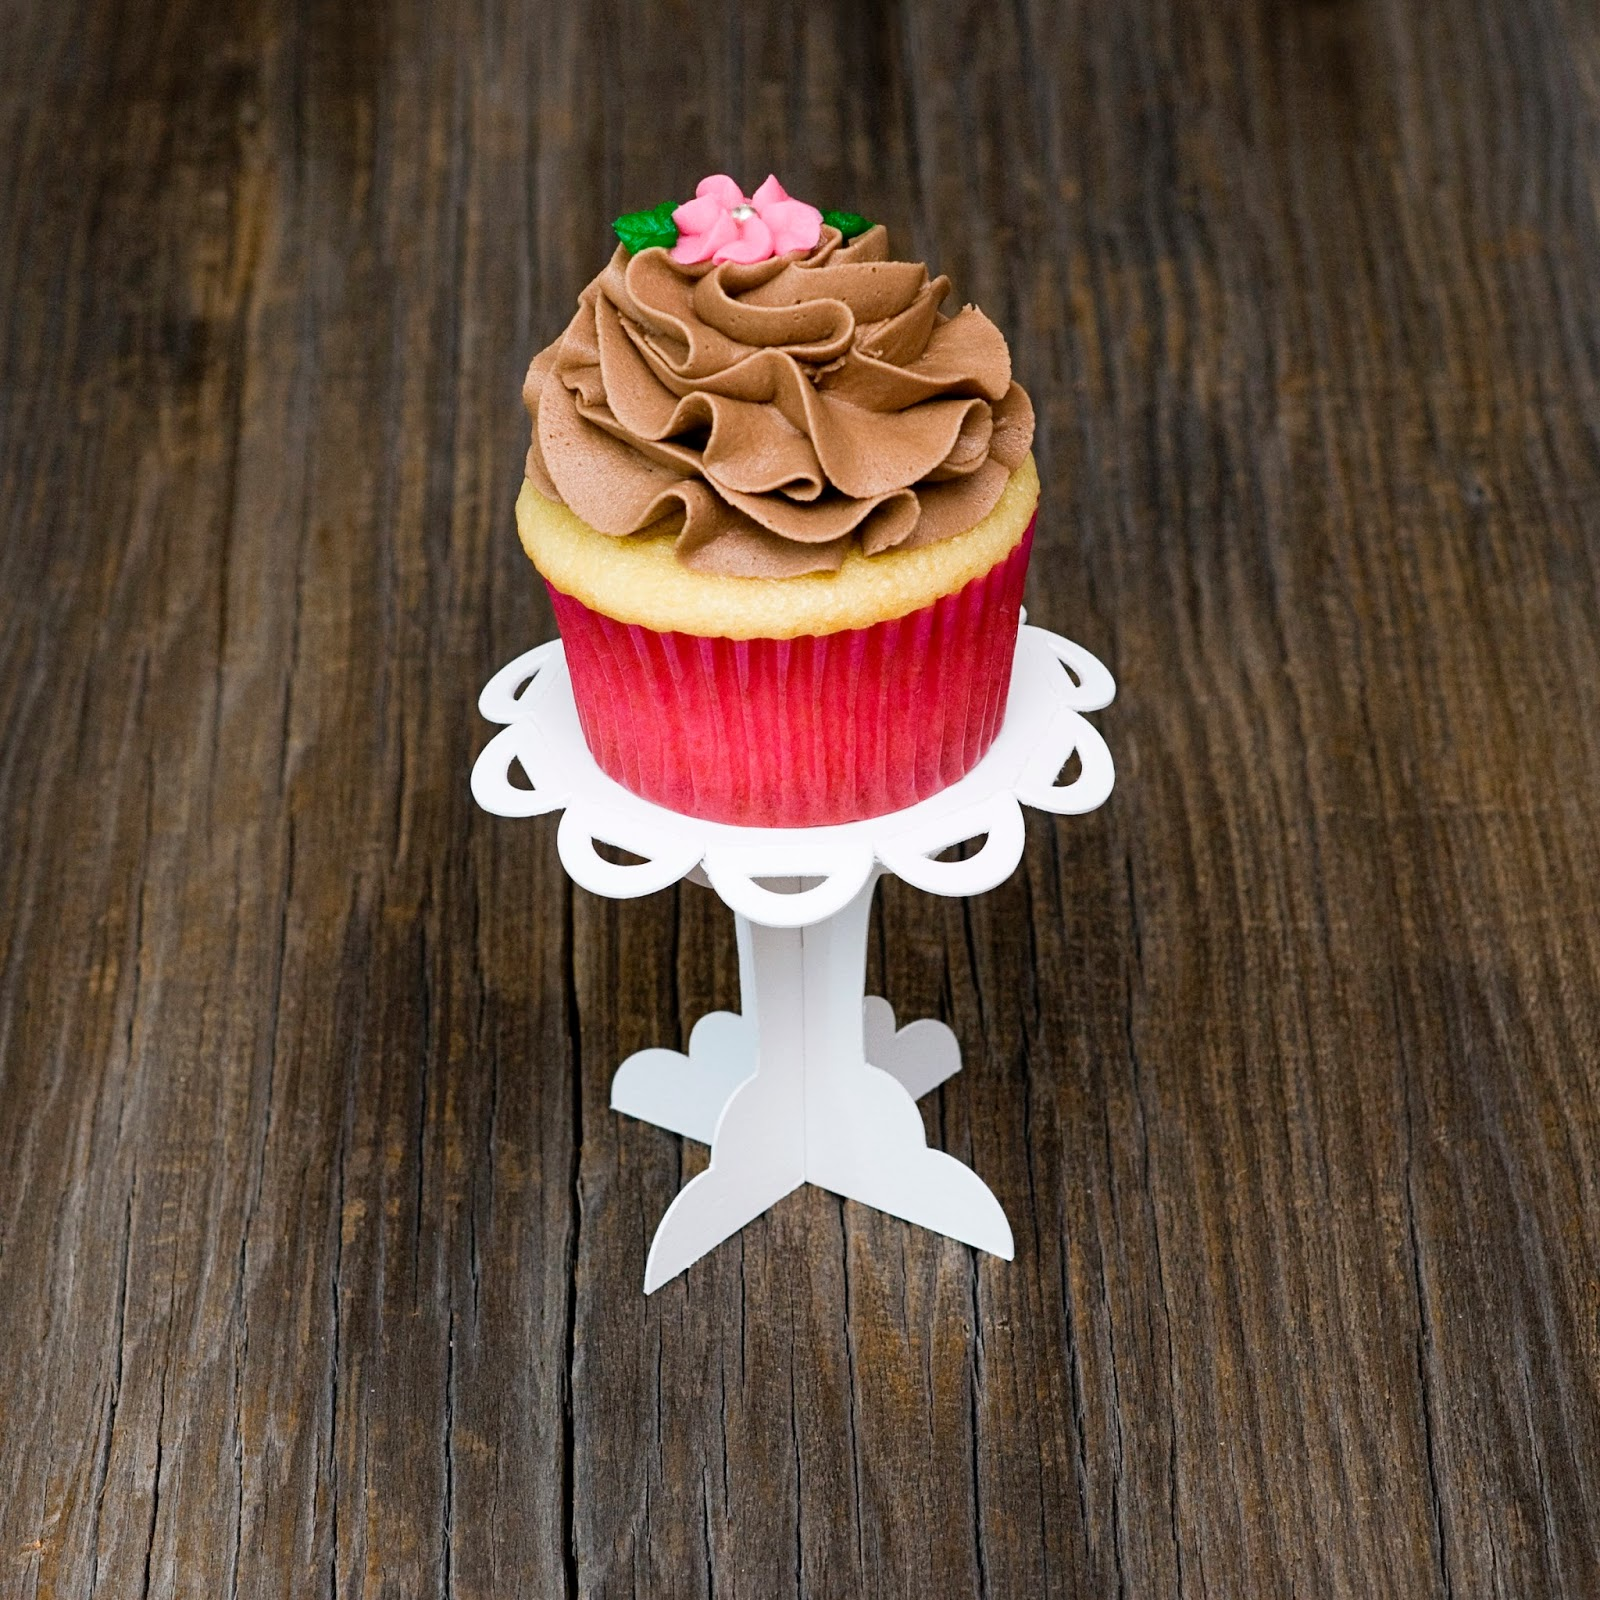 Paper Cupcake Stands